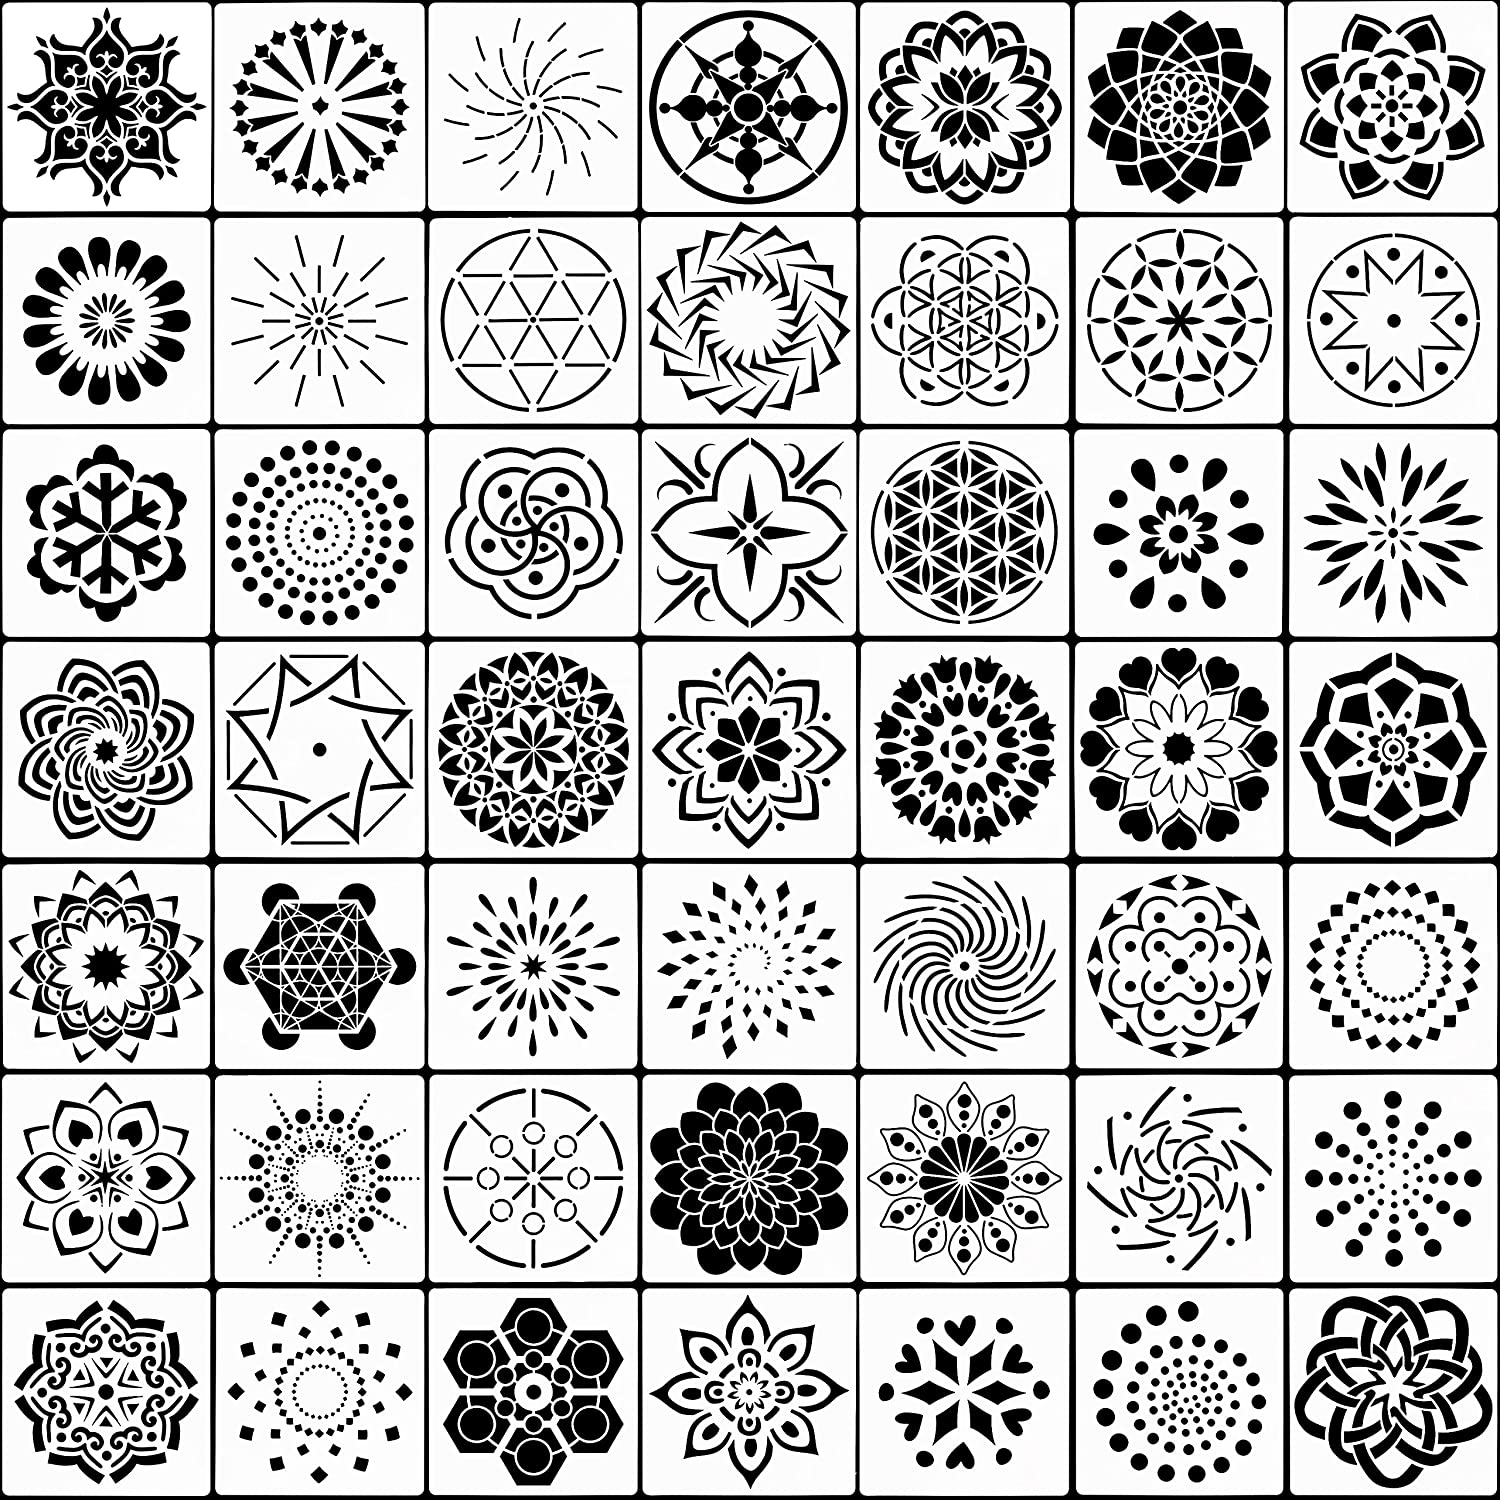 Metal and Walls Art Glass Fabic 3.5x3.5inch SUBANG 50 Pack Mandala Dot Painting Templates Stencils for Painting on Wood